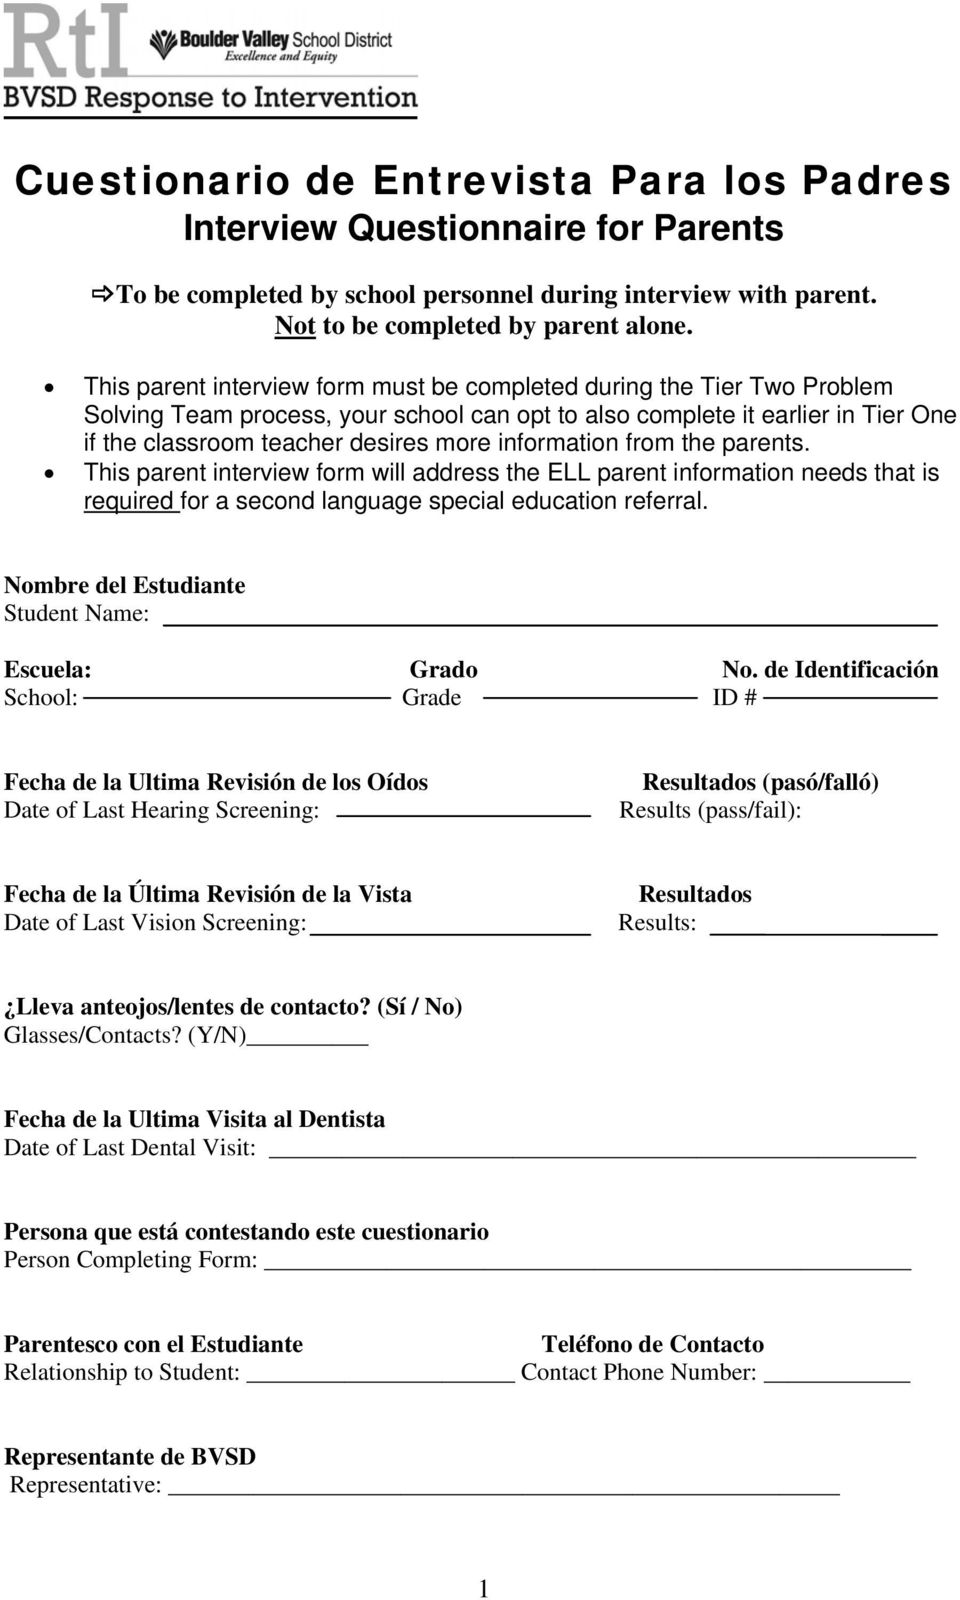 information from the parents. This parent interview form will address the ELL parent information needs that is required for a second language special education referral.